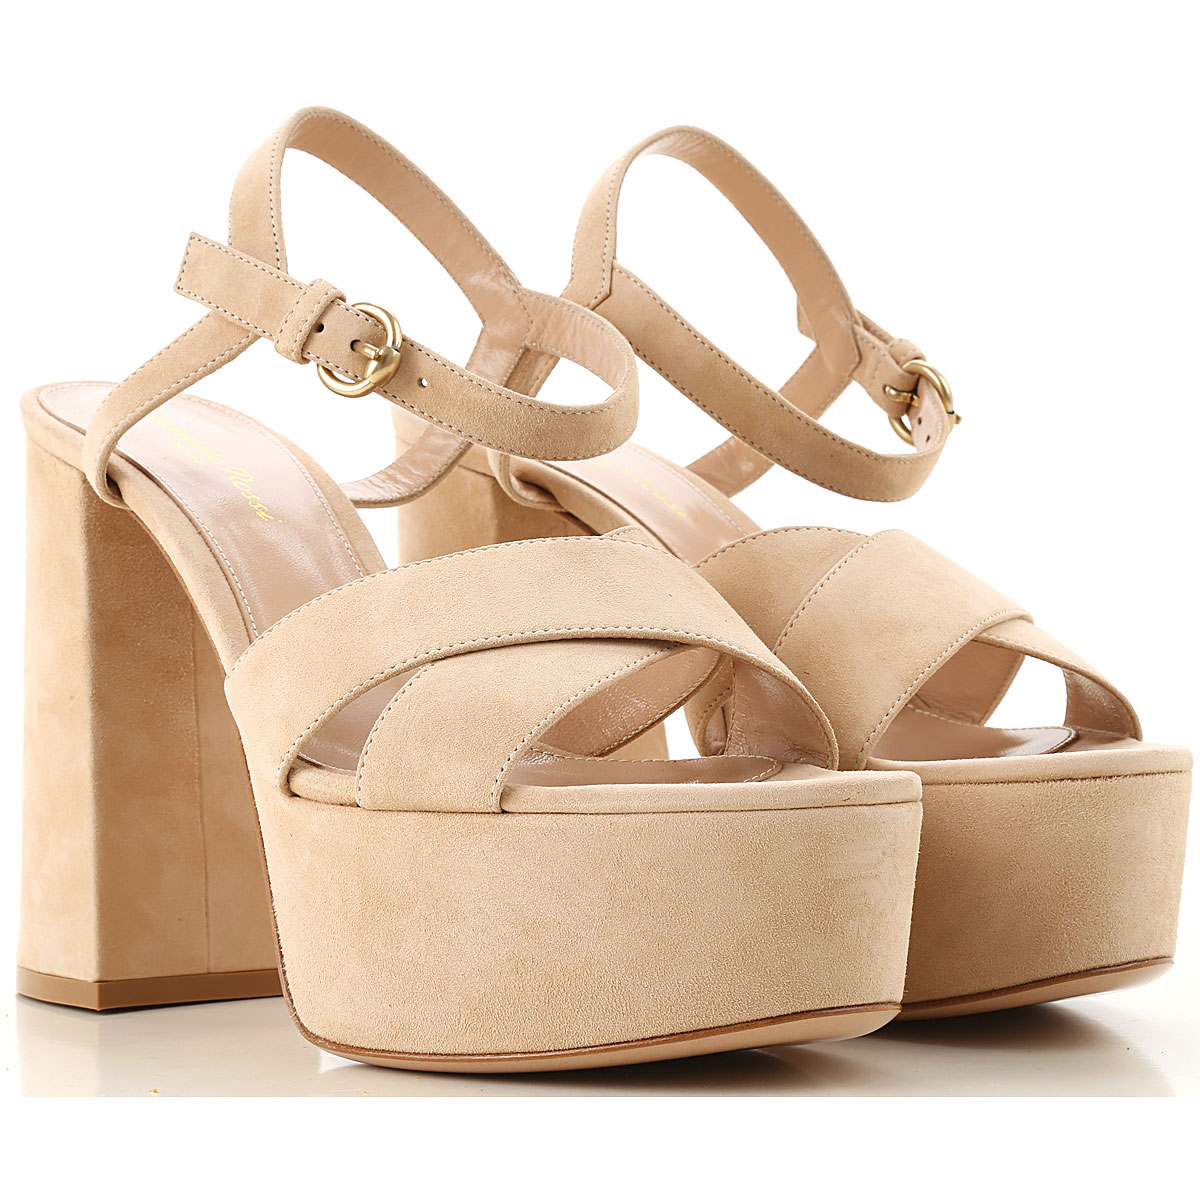 Gianvito Rossi Sandals for Women On Sale, Nude, Suede leather, 2019, 10 5.5 6 9